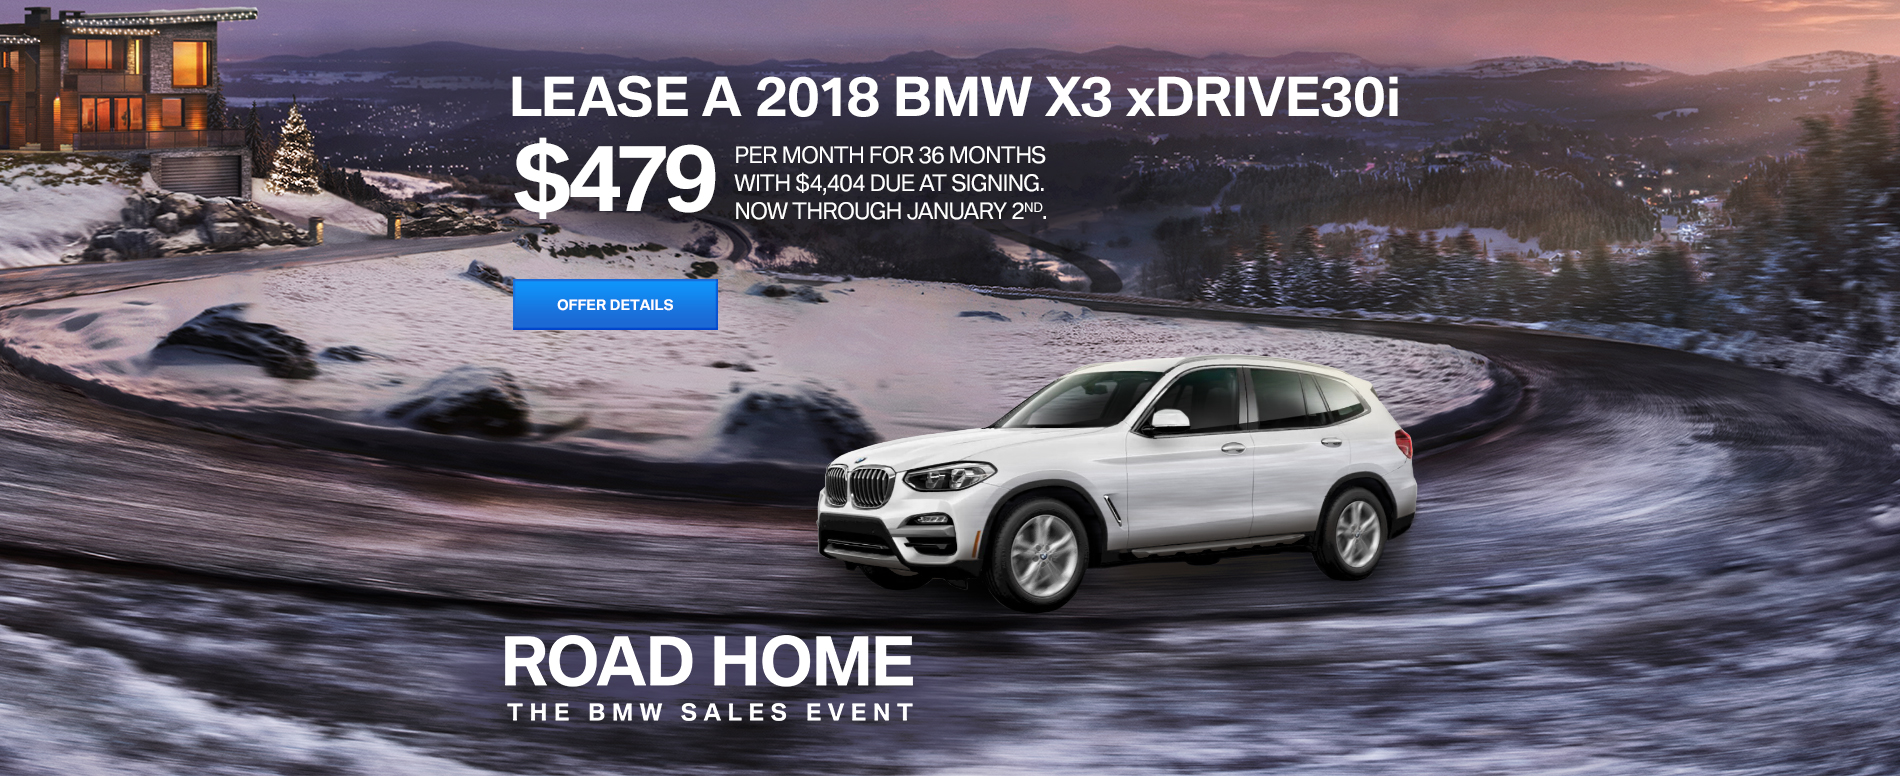 LEASE A 2018 BMW X3 xDRIVE30i FOR $479/MONTH FOR 36 MONTHS WITH